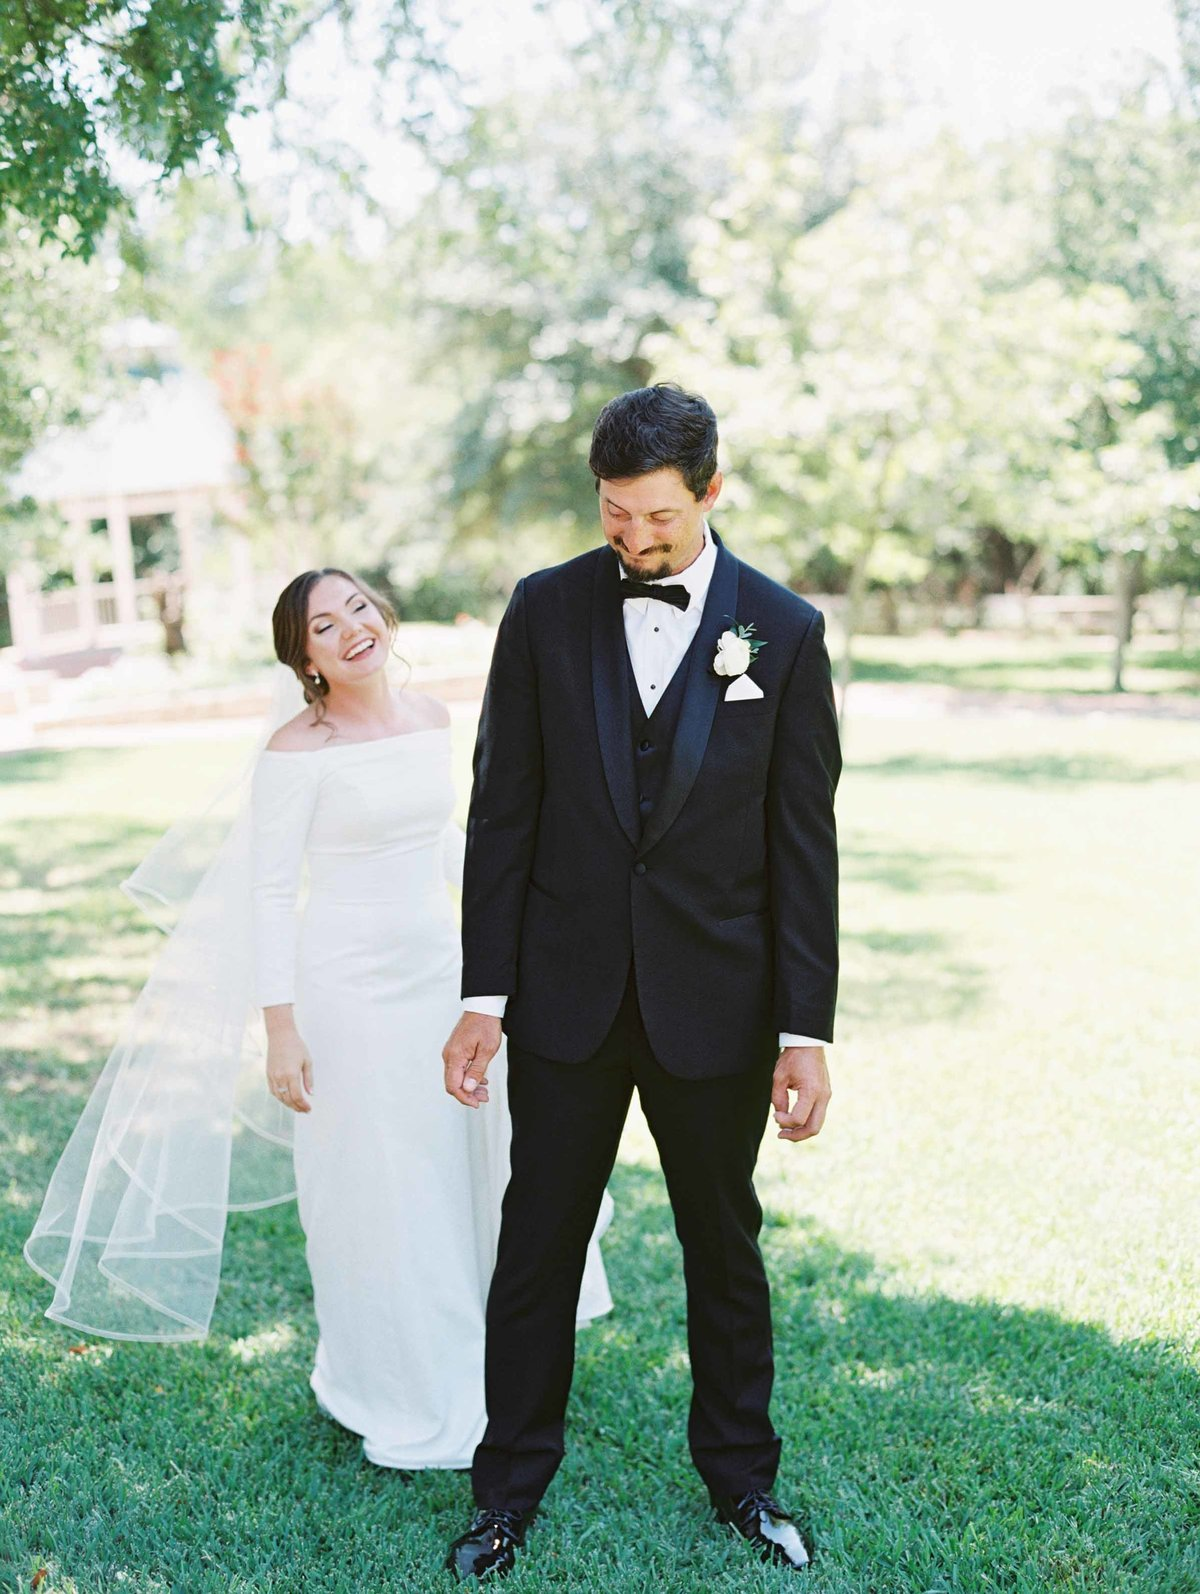 Angel_owens_photography_wedding_oliviarobert86